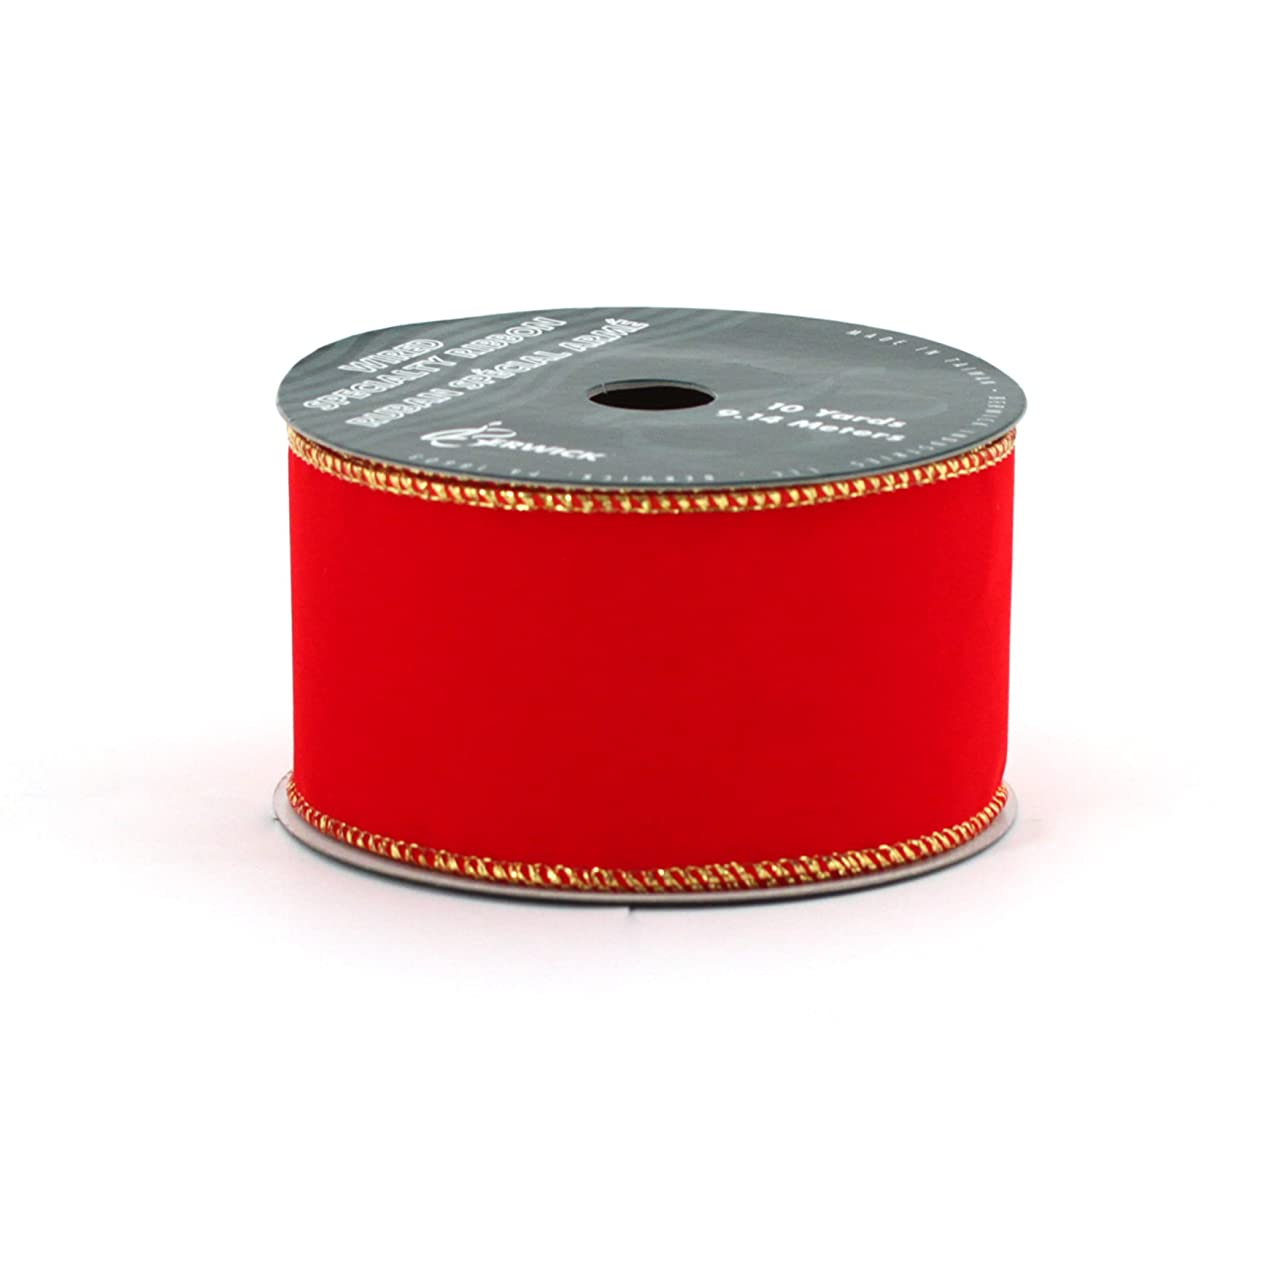 Berwick Wired Edge Velvet Craft Ribbon, 2-1/2-Inch Wide by 10-Yard Spool, Brick